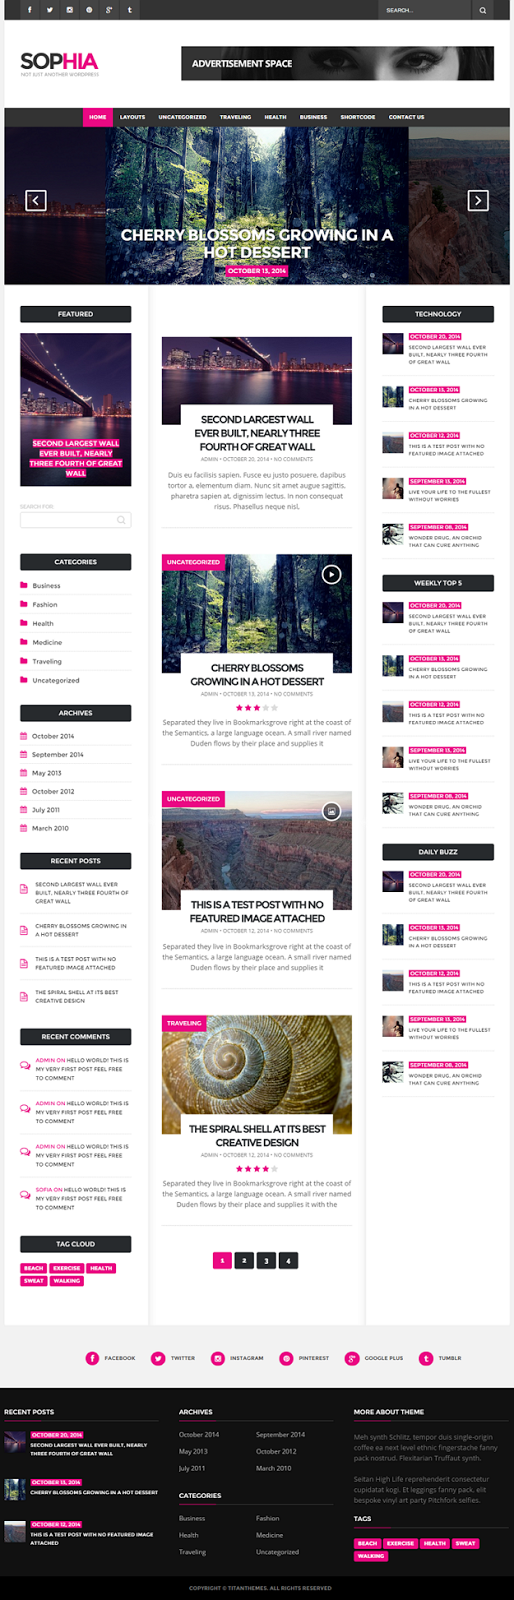 Sofia - An Elegant Magazine WordPress Theme